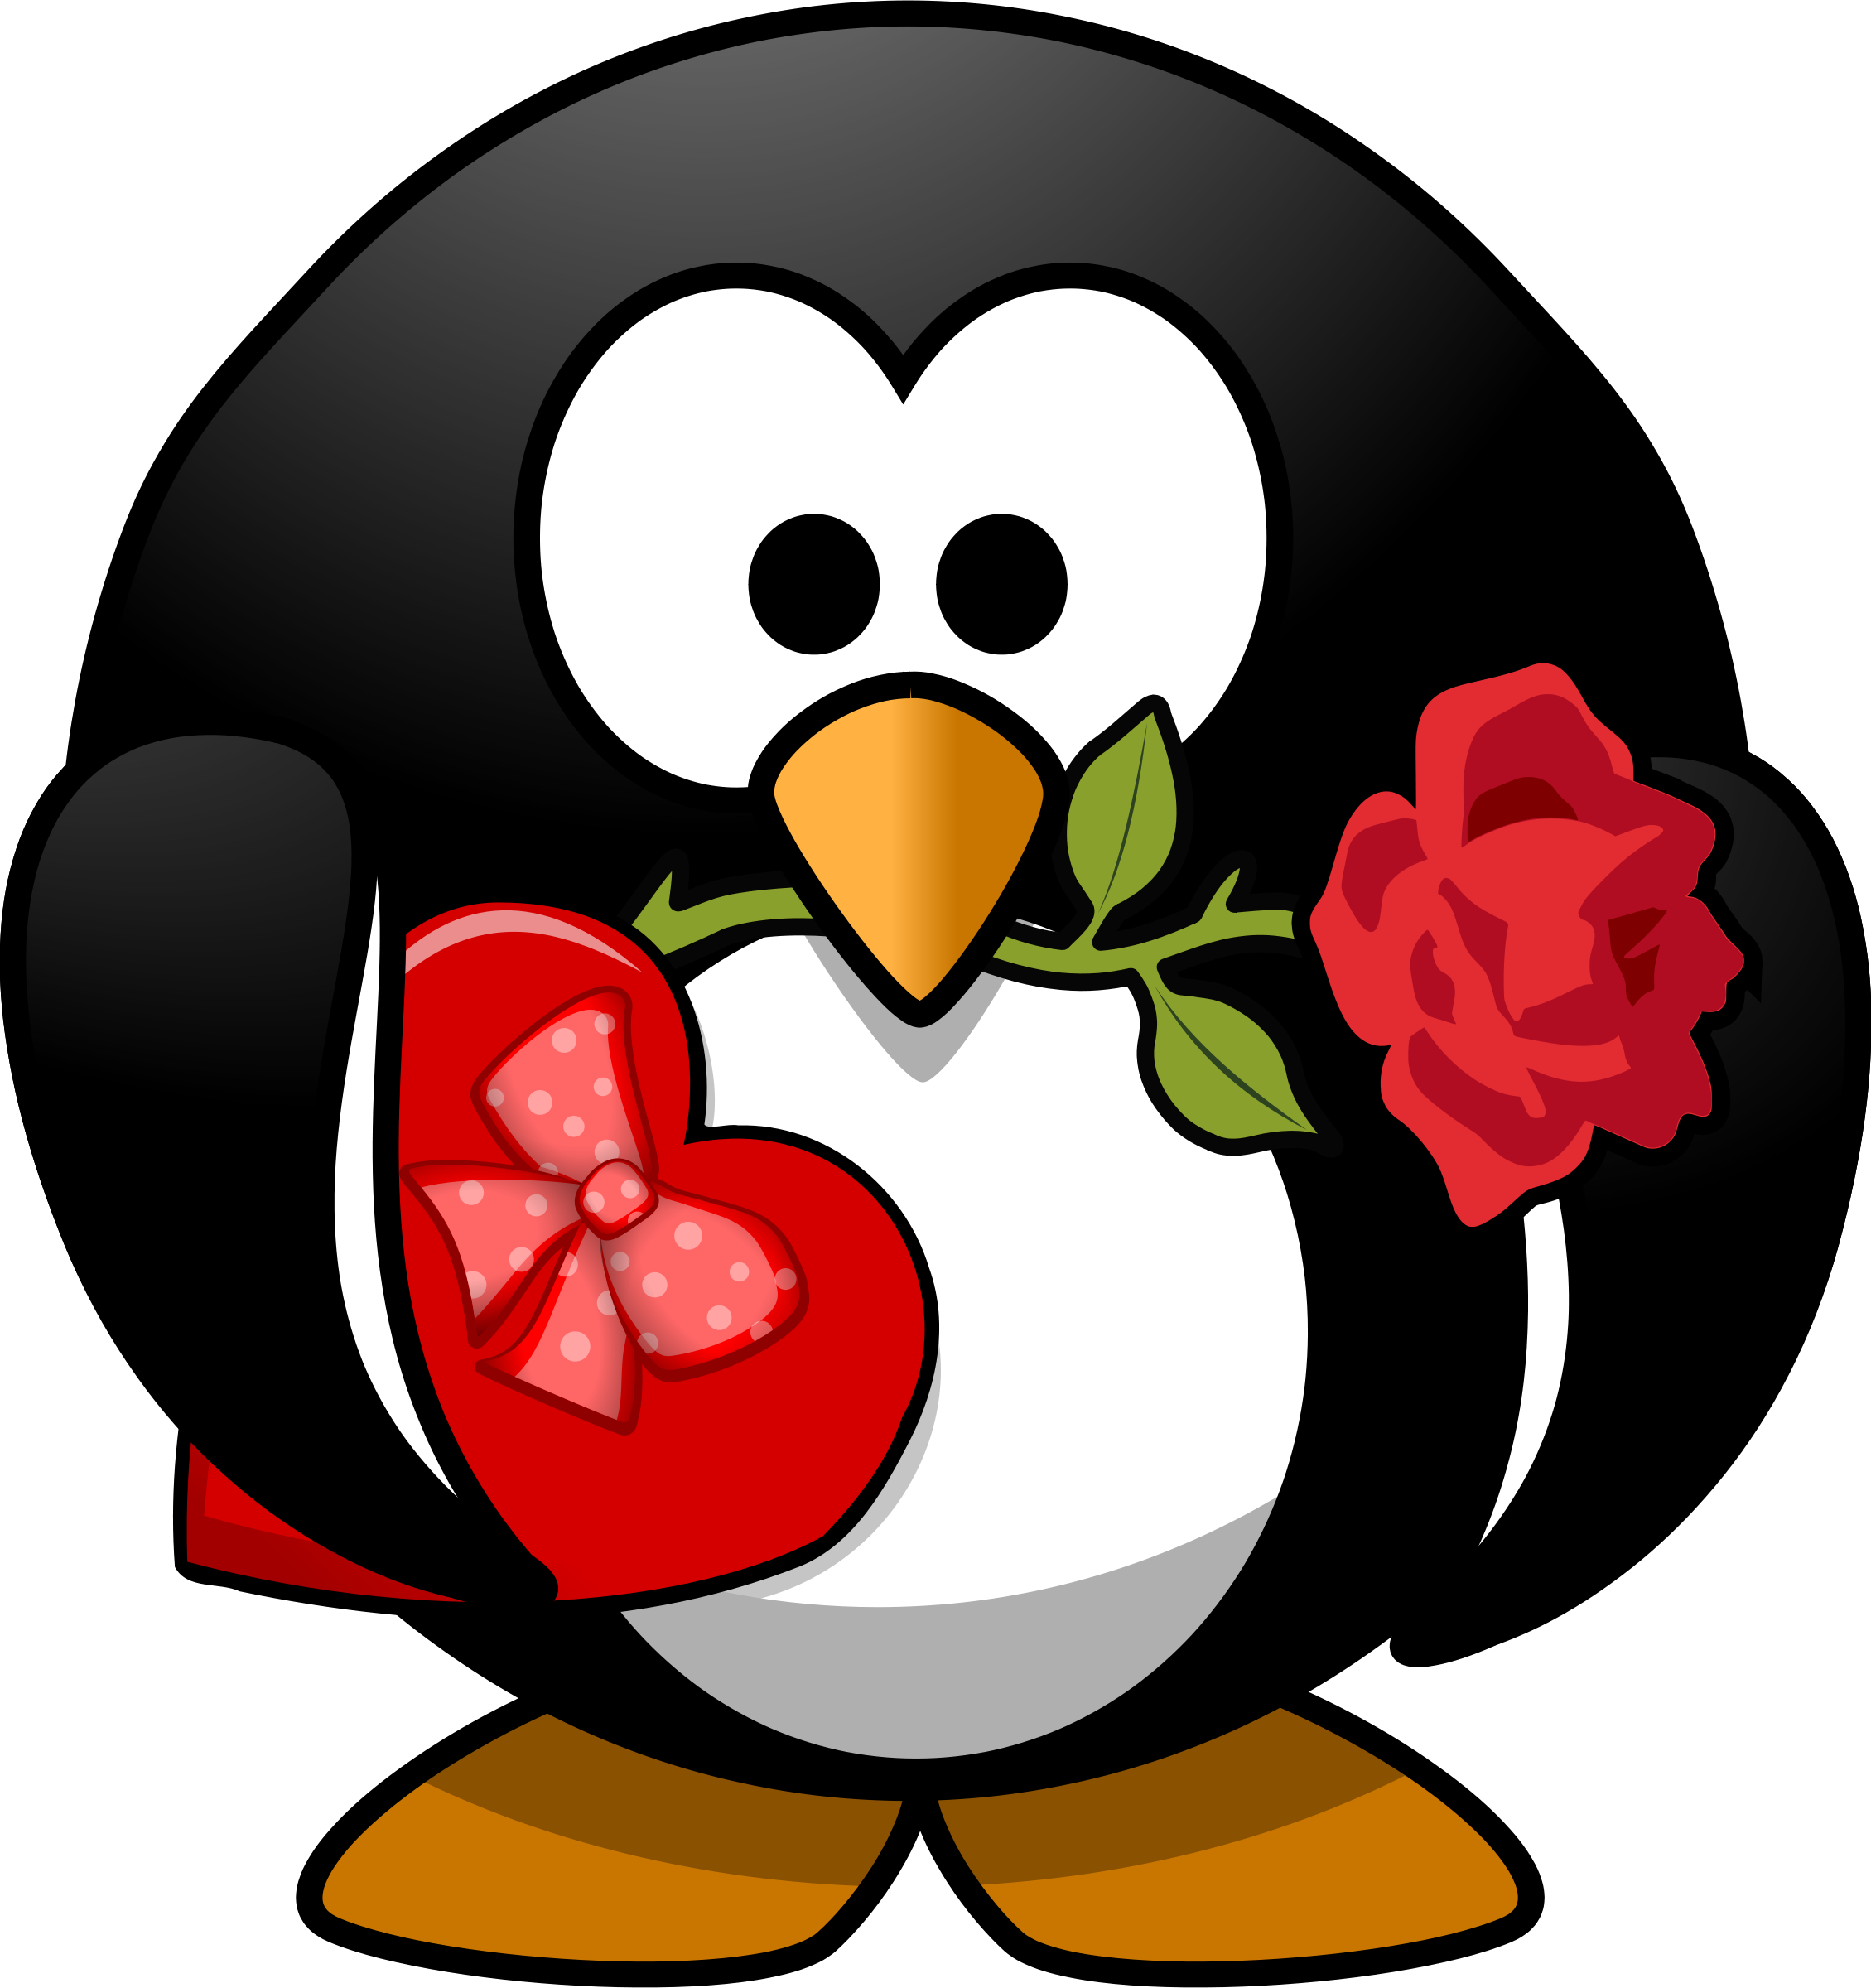 Penguin clipart silly Clipart sharing Animal images day